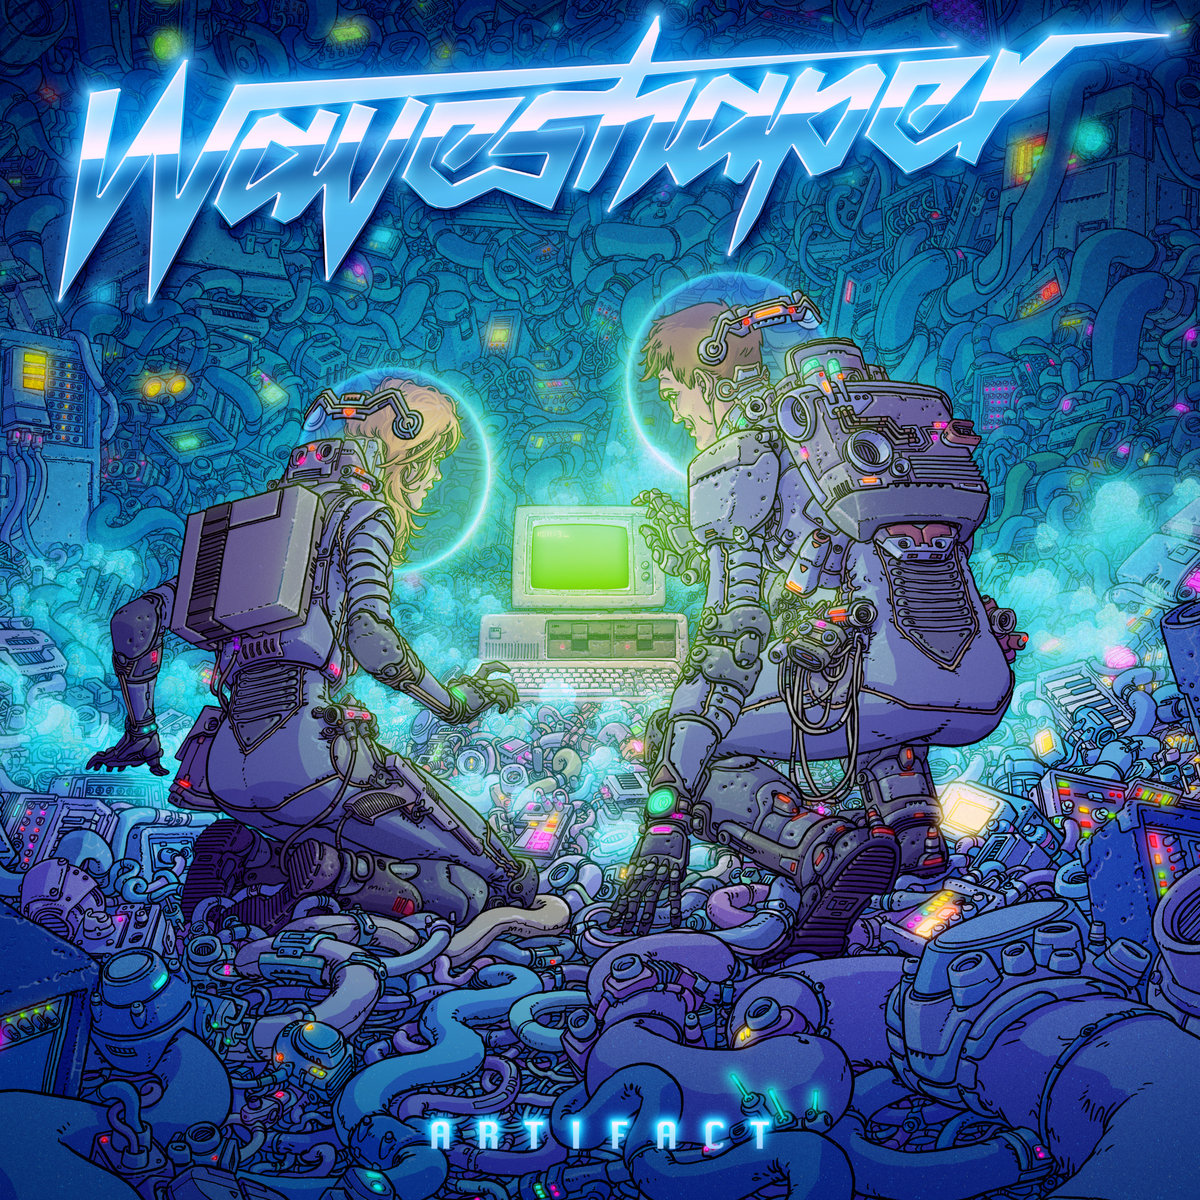 a2561808217 10 - Waveshaper - Artifact